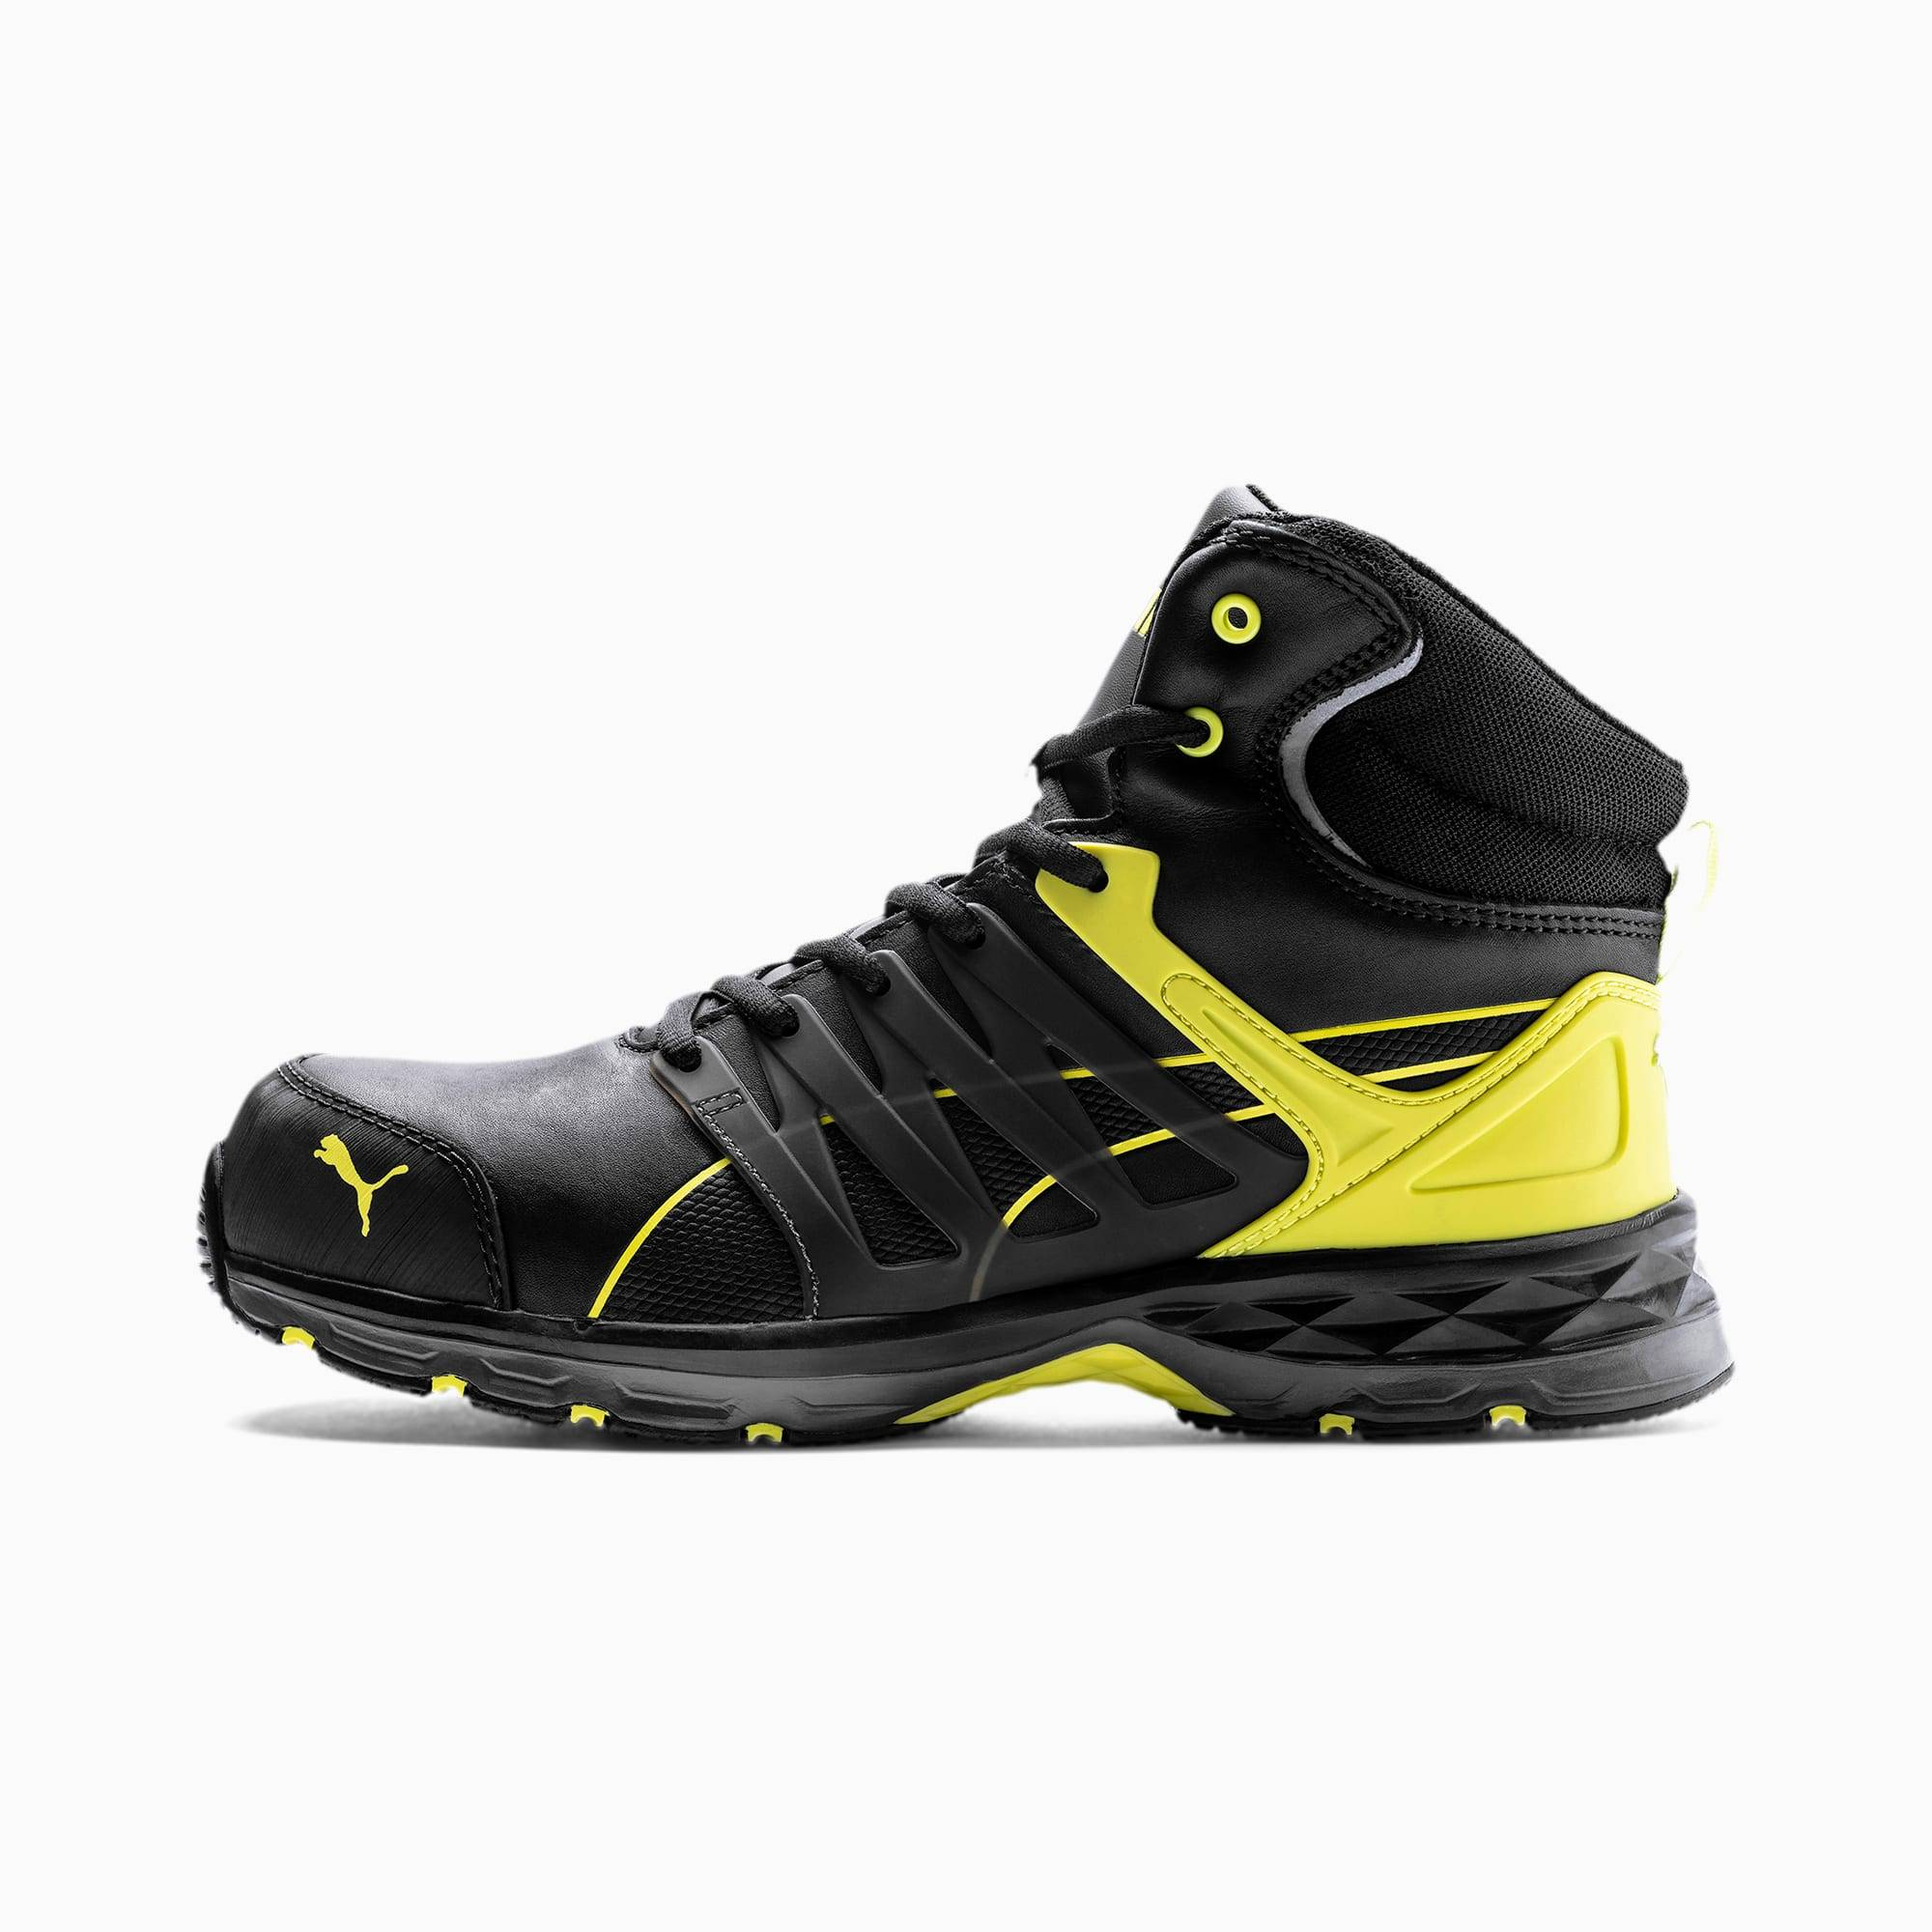 Puma Velocity 2.0 Mid S3 Esd Men's Safety Boots, Black/Yellow, size 12, Shoes